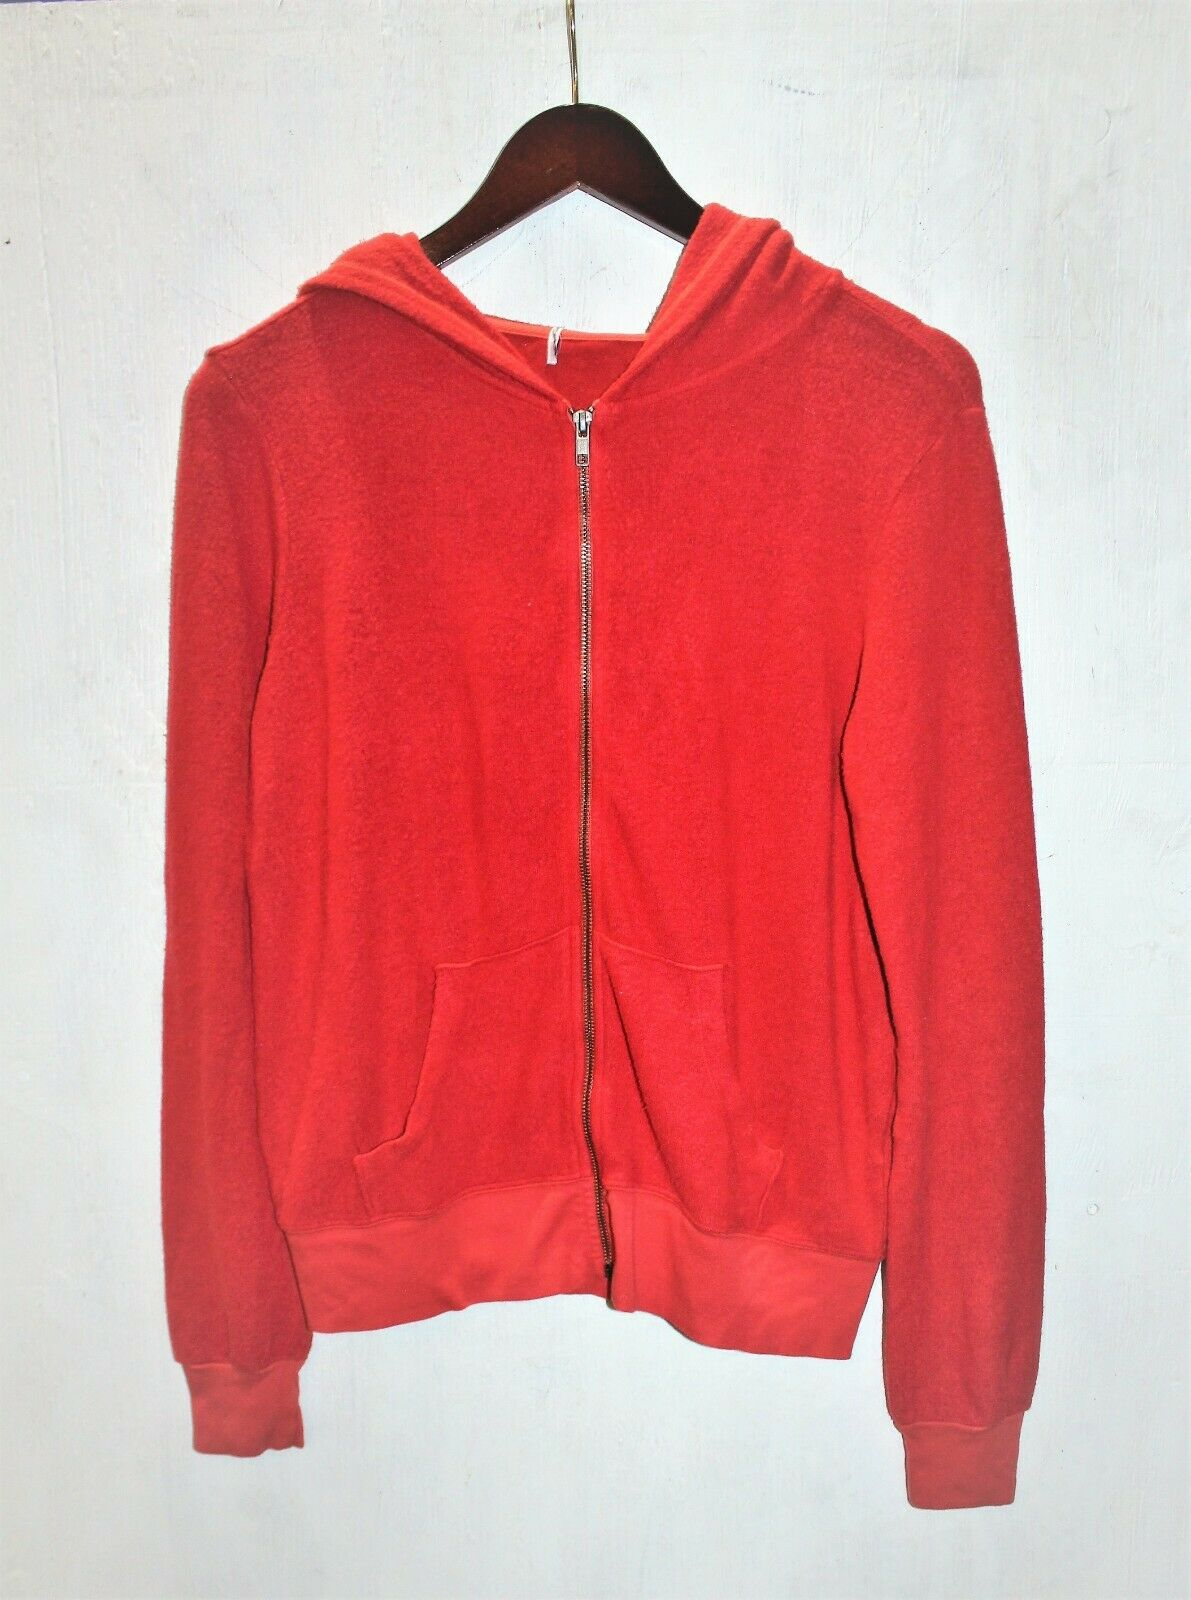 Wildfox Women's Hoodie Sweatshirt Basic Zip Baggy Beach Jumper Solid Red. Sz  S